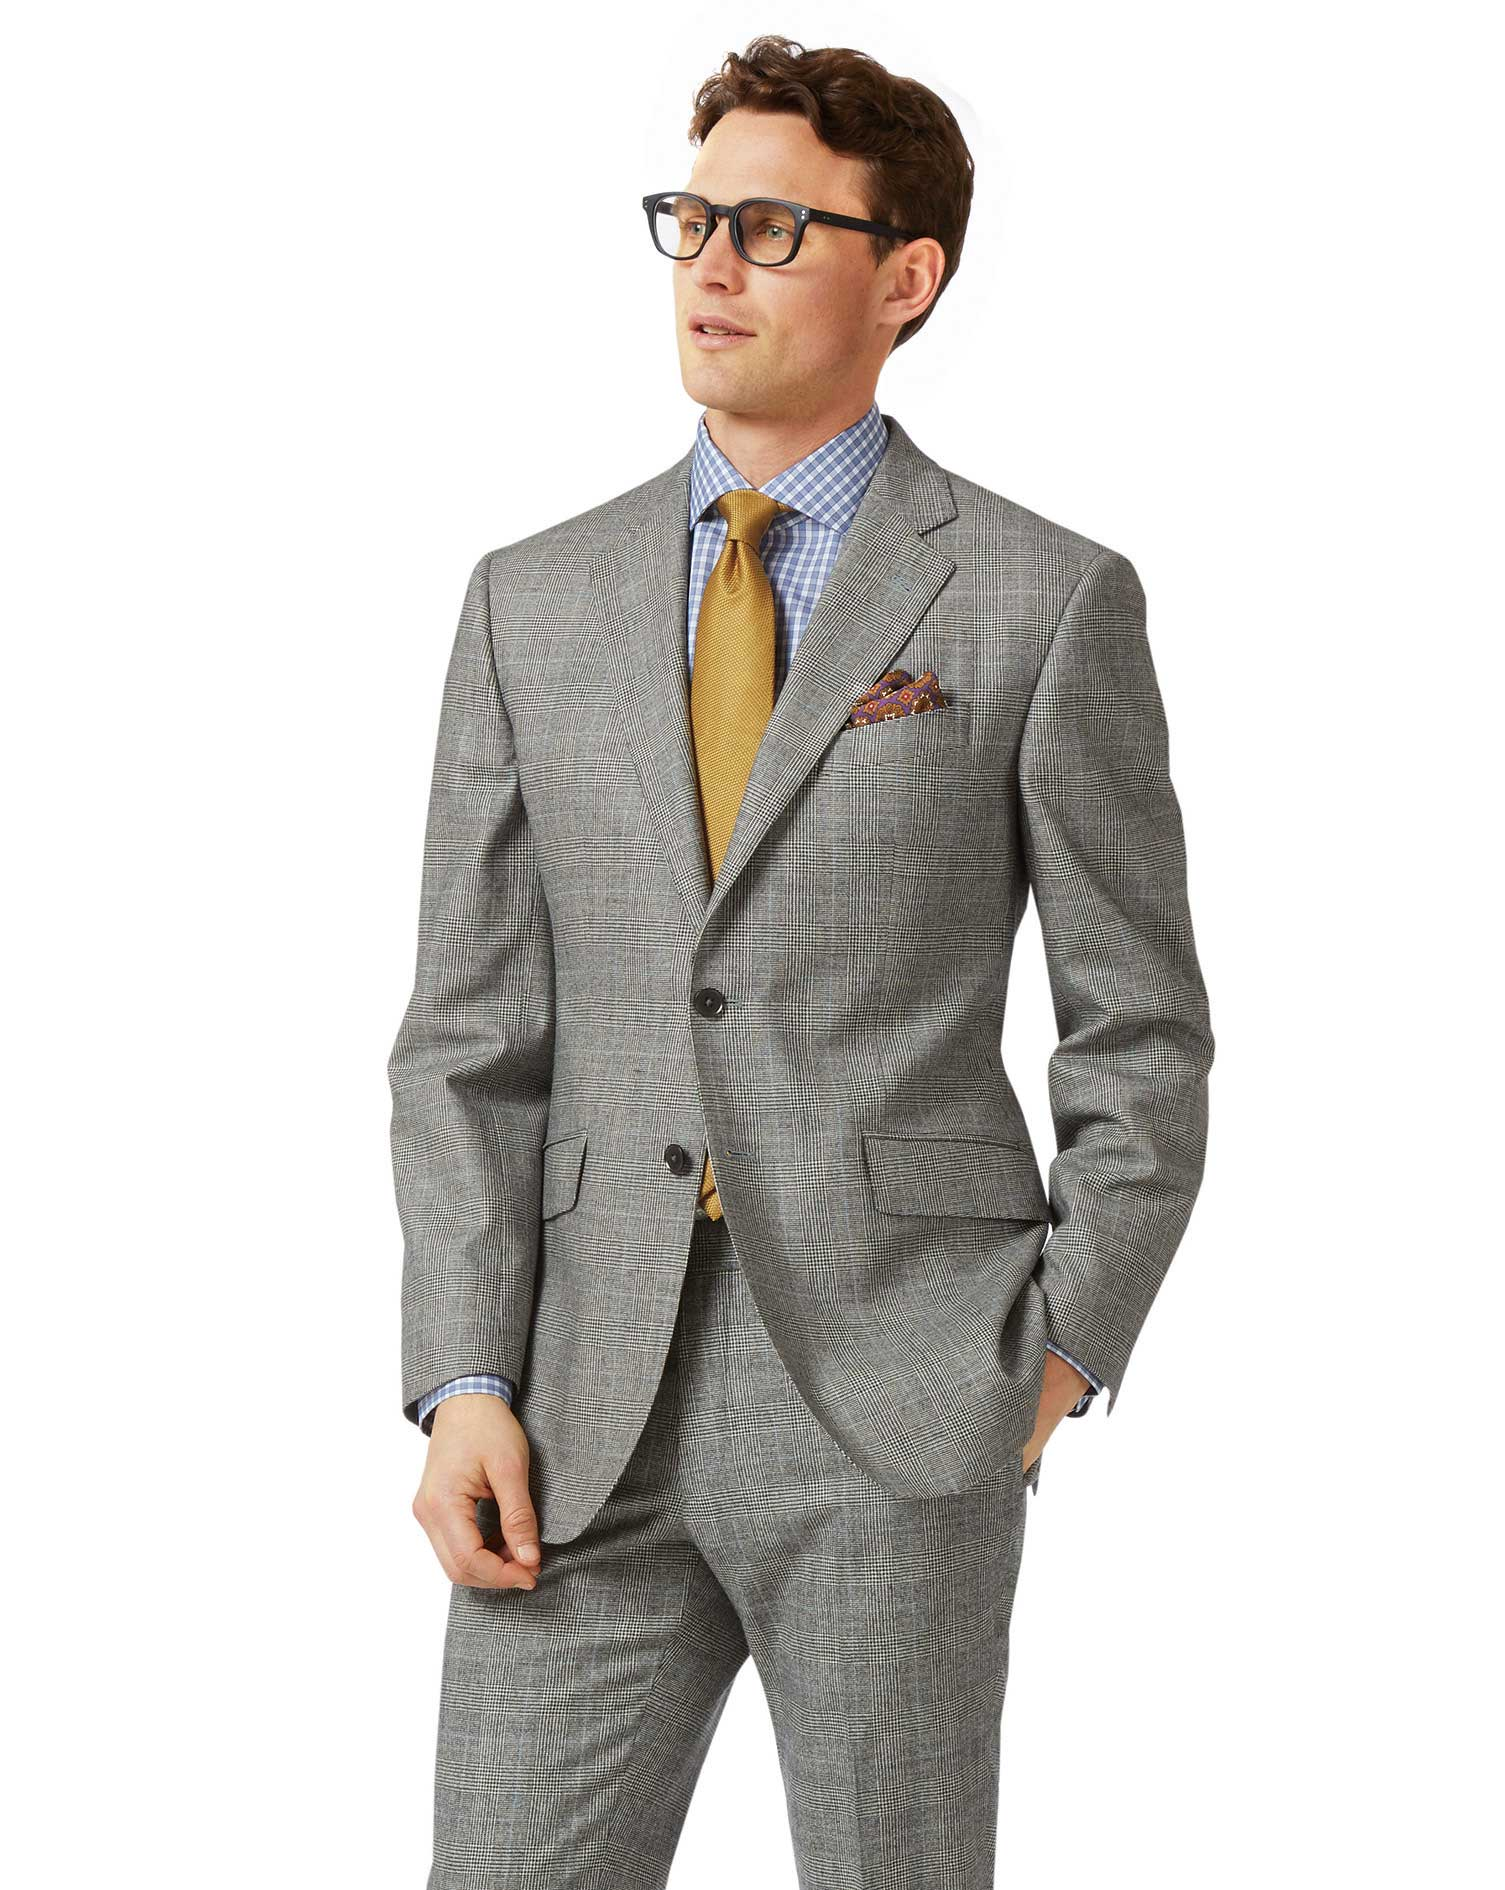 Grey Classic Fit Prince Of Wales Check Flannel Business Suit Wool Jacket Size 40 Short by Charles Ty